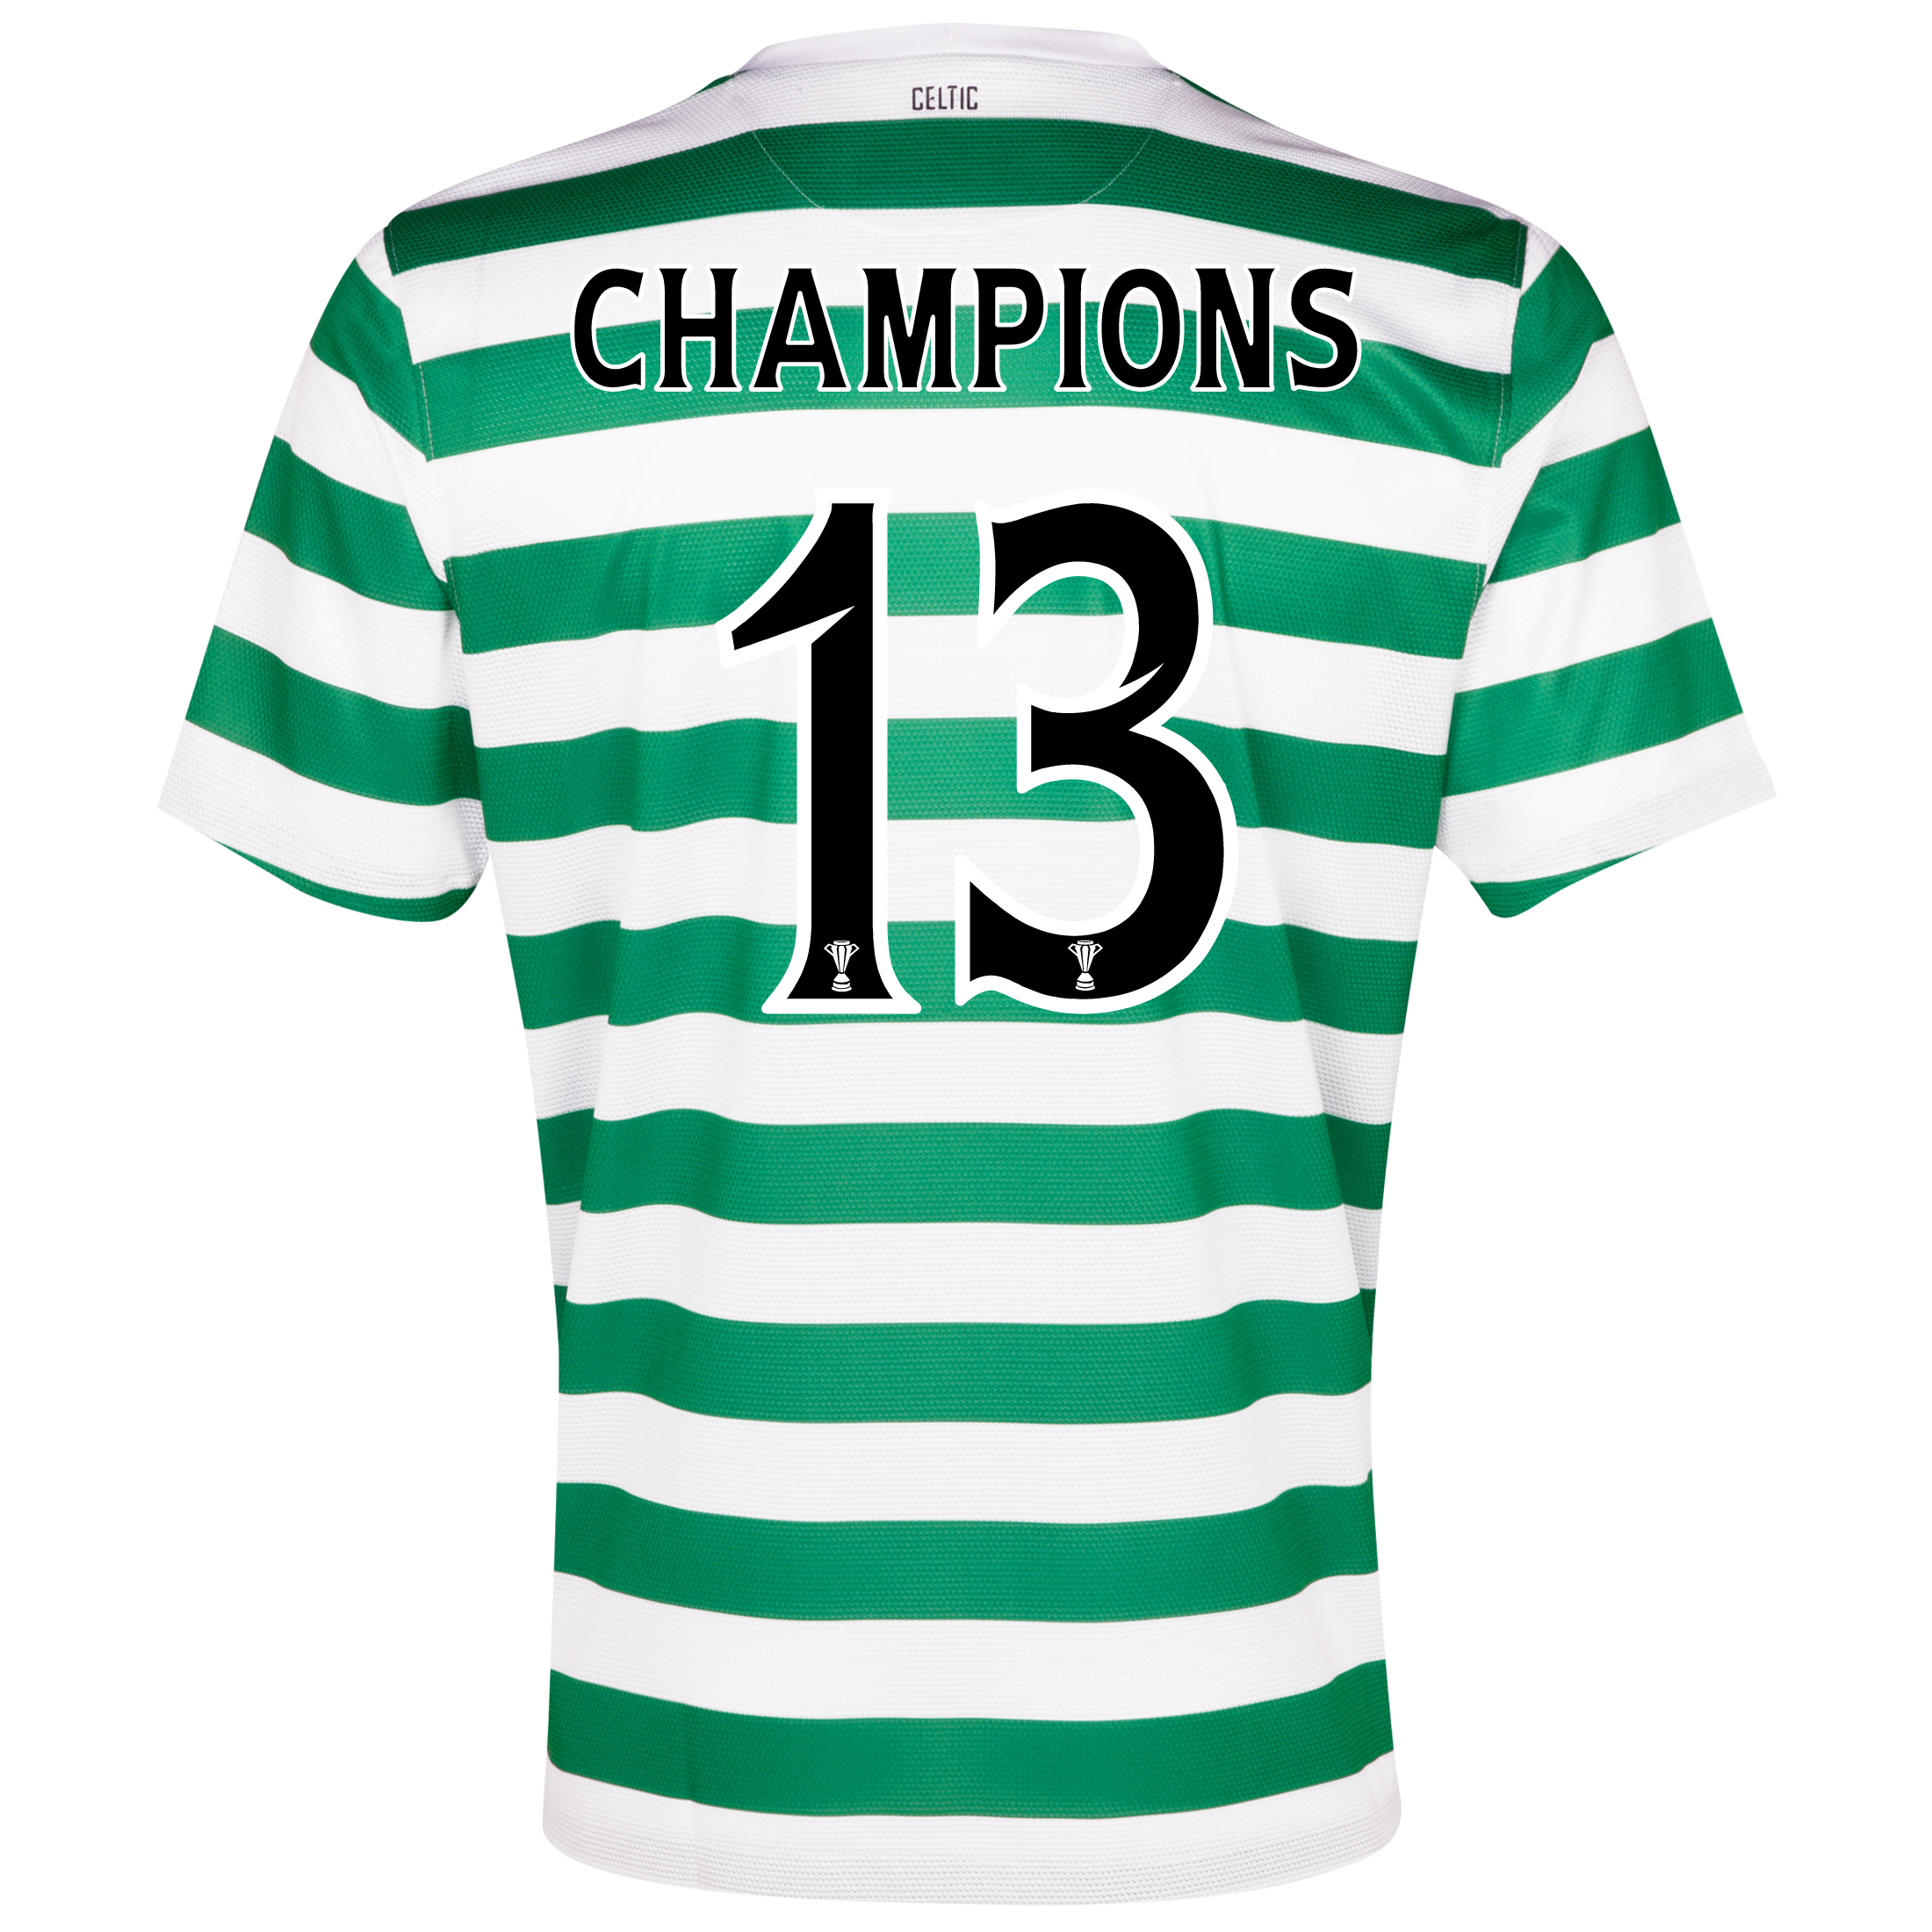 Shop the Champions 13 Shirts